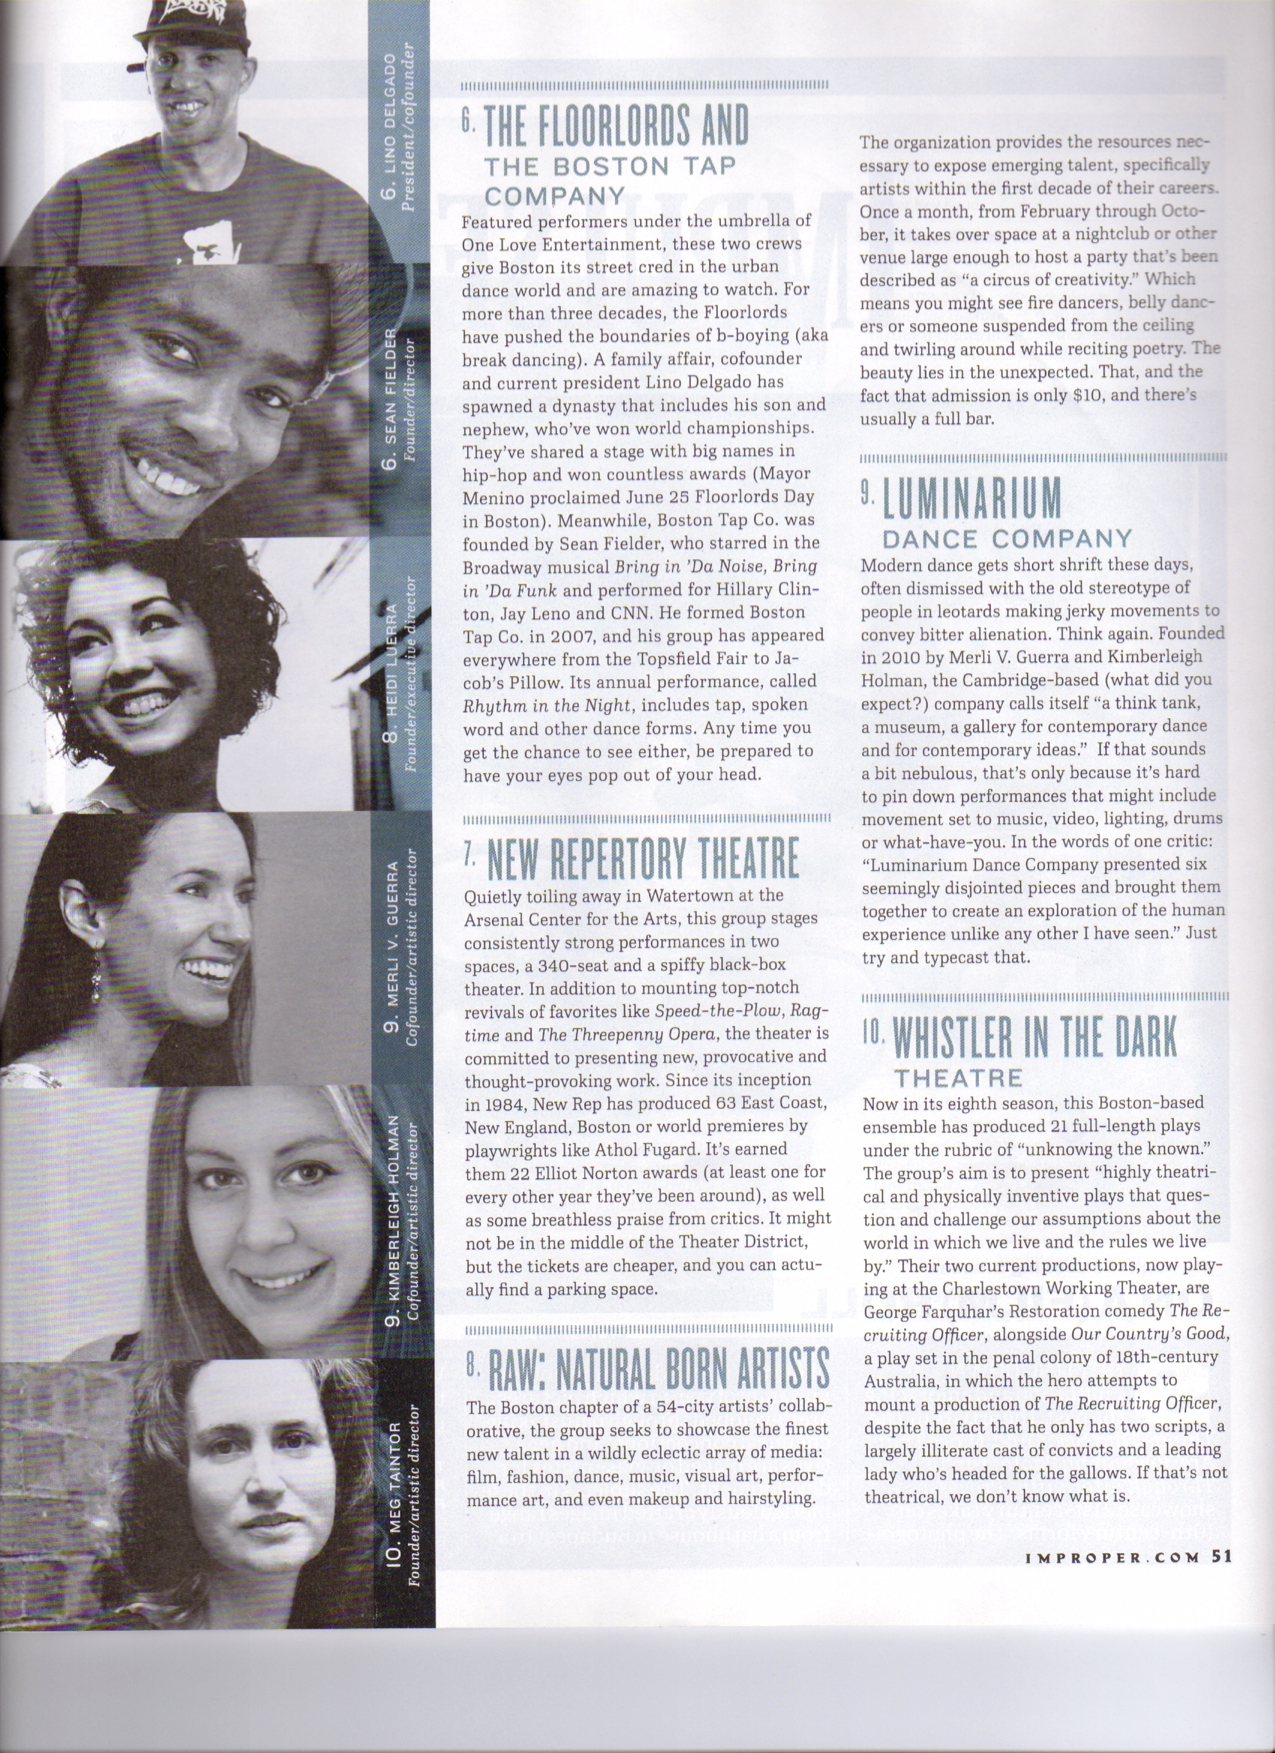 Improper Bostonian Feature, March 2013